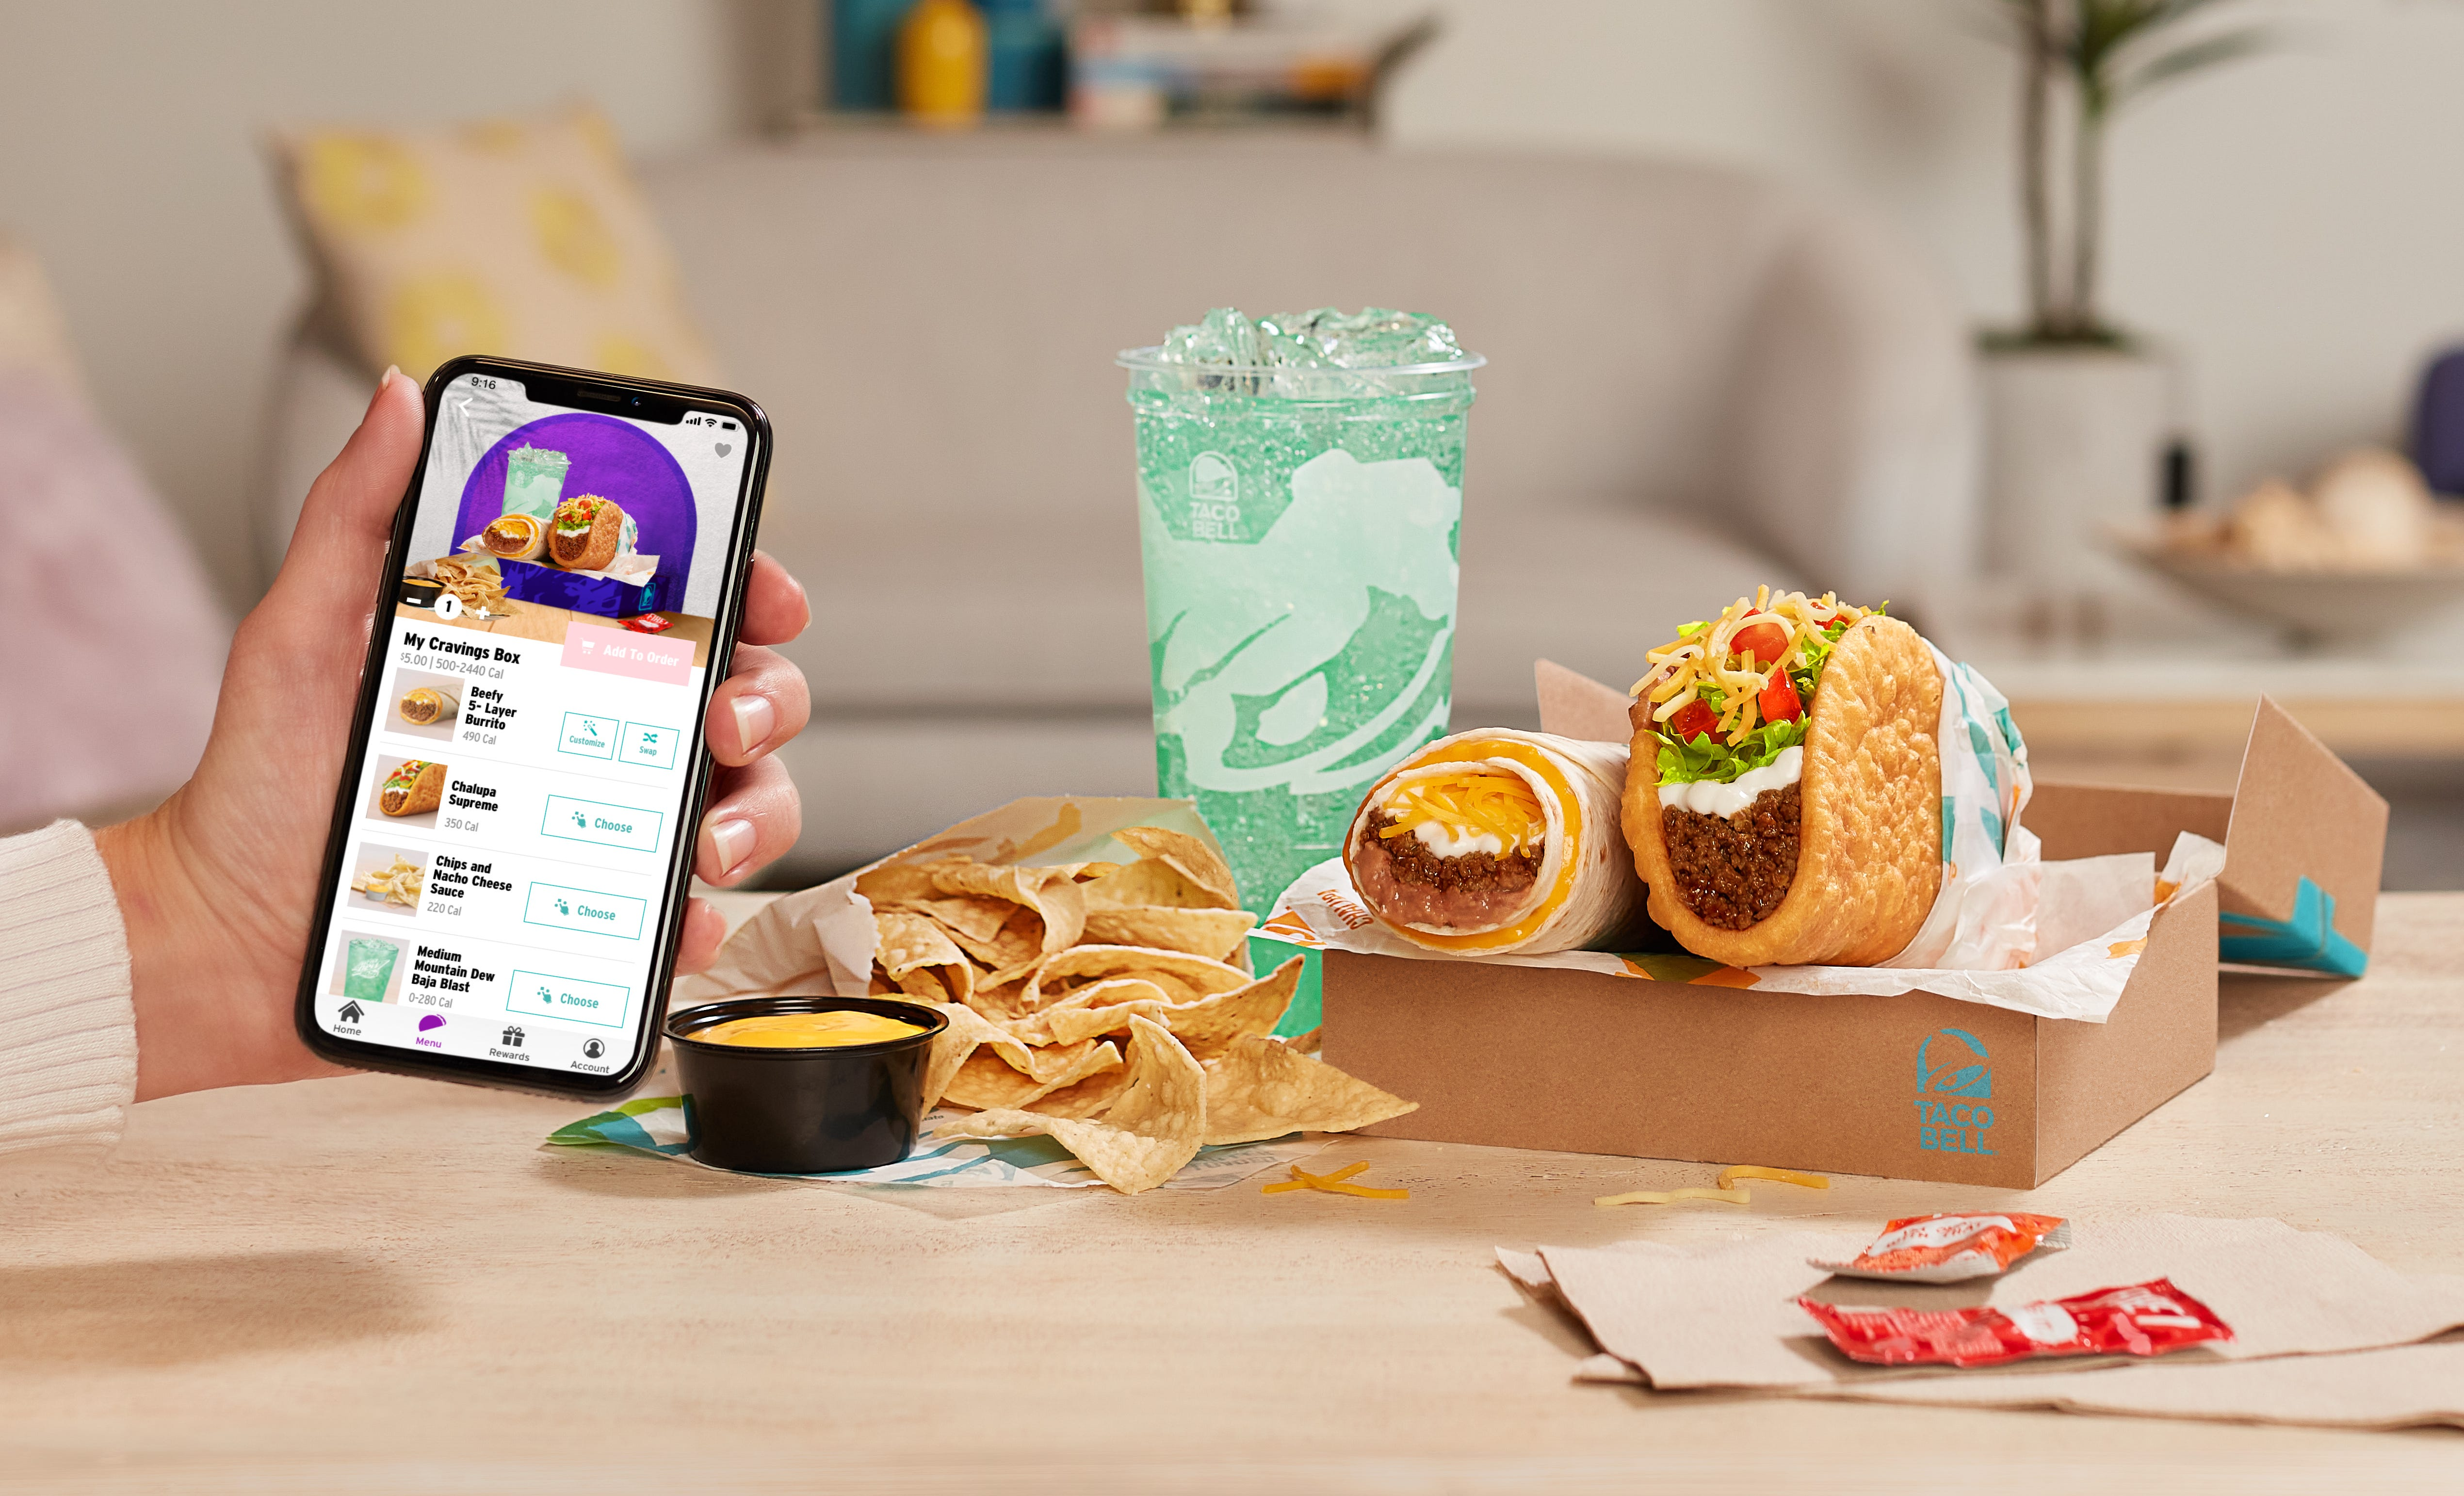 Taco Bell releases $5 'Build Your Own Cravings Box' and rewards members get early access